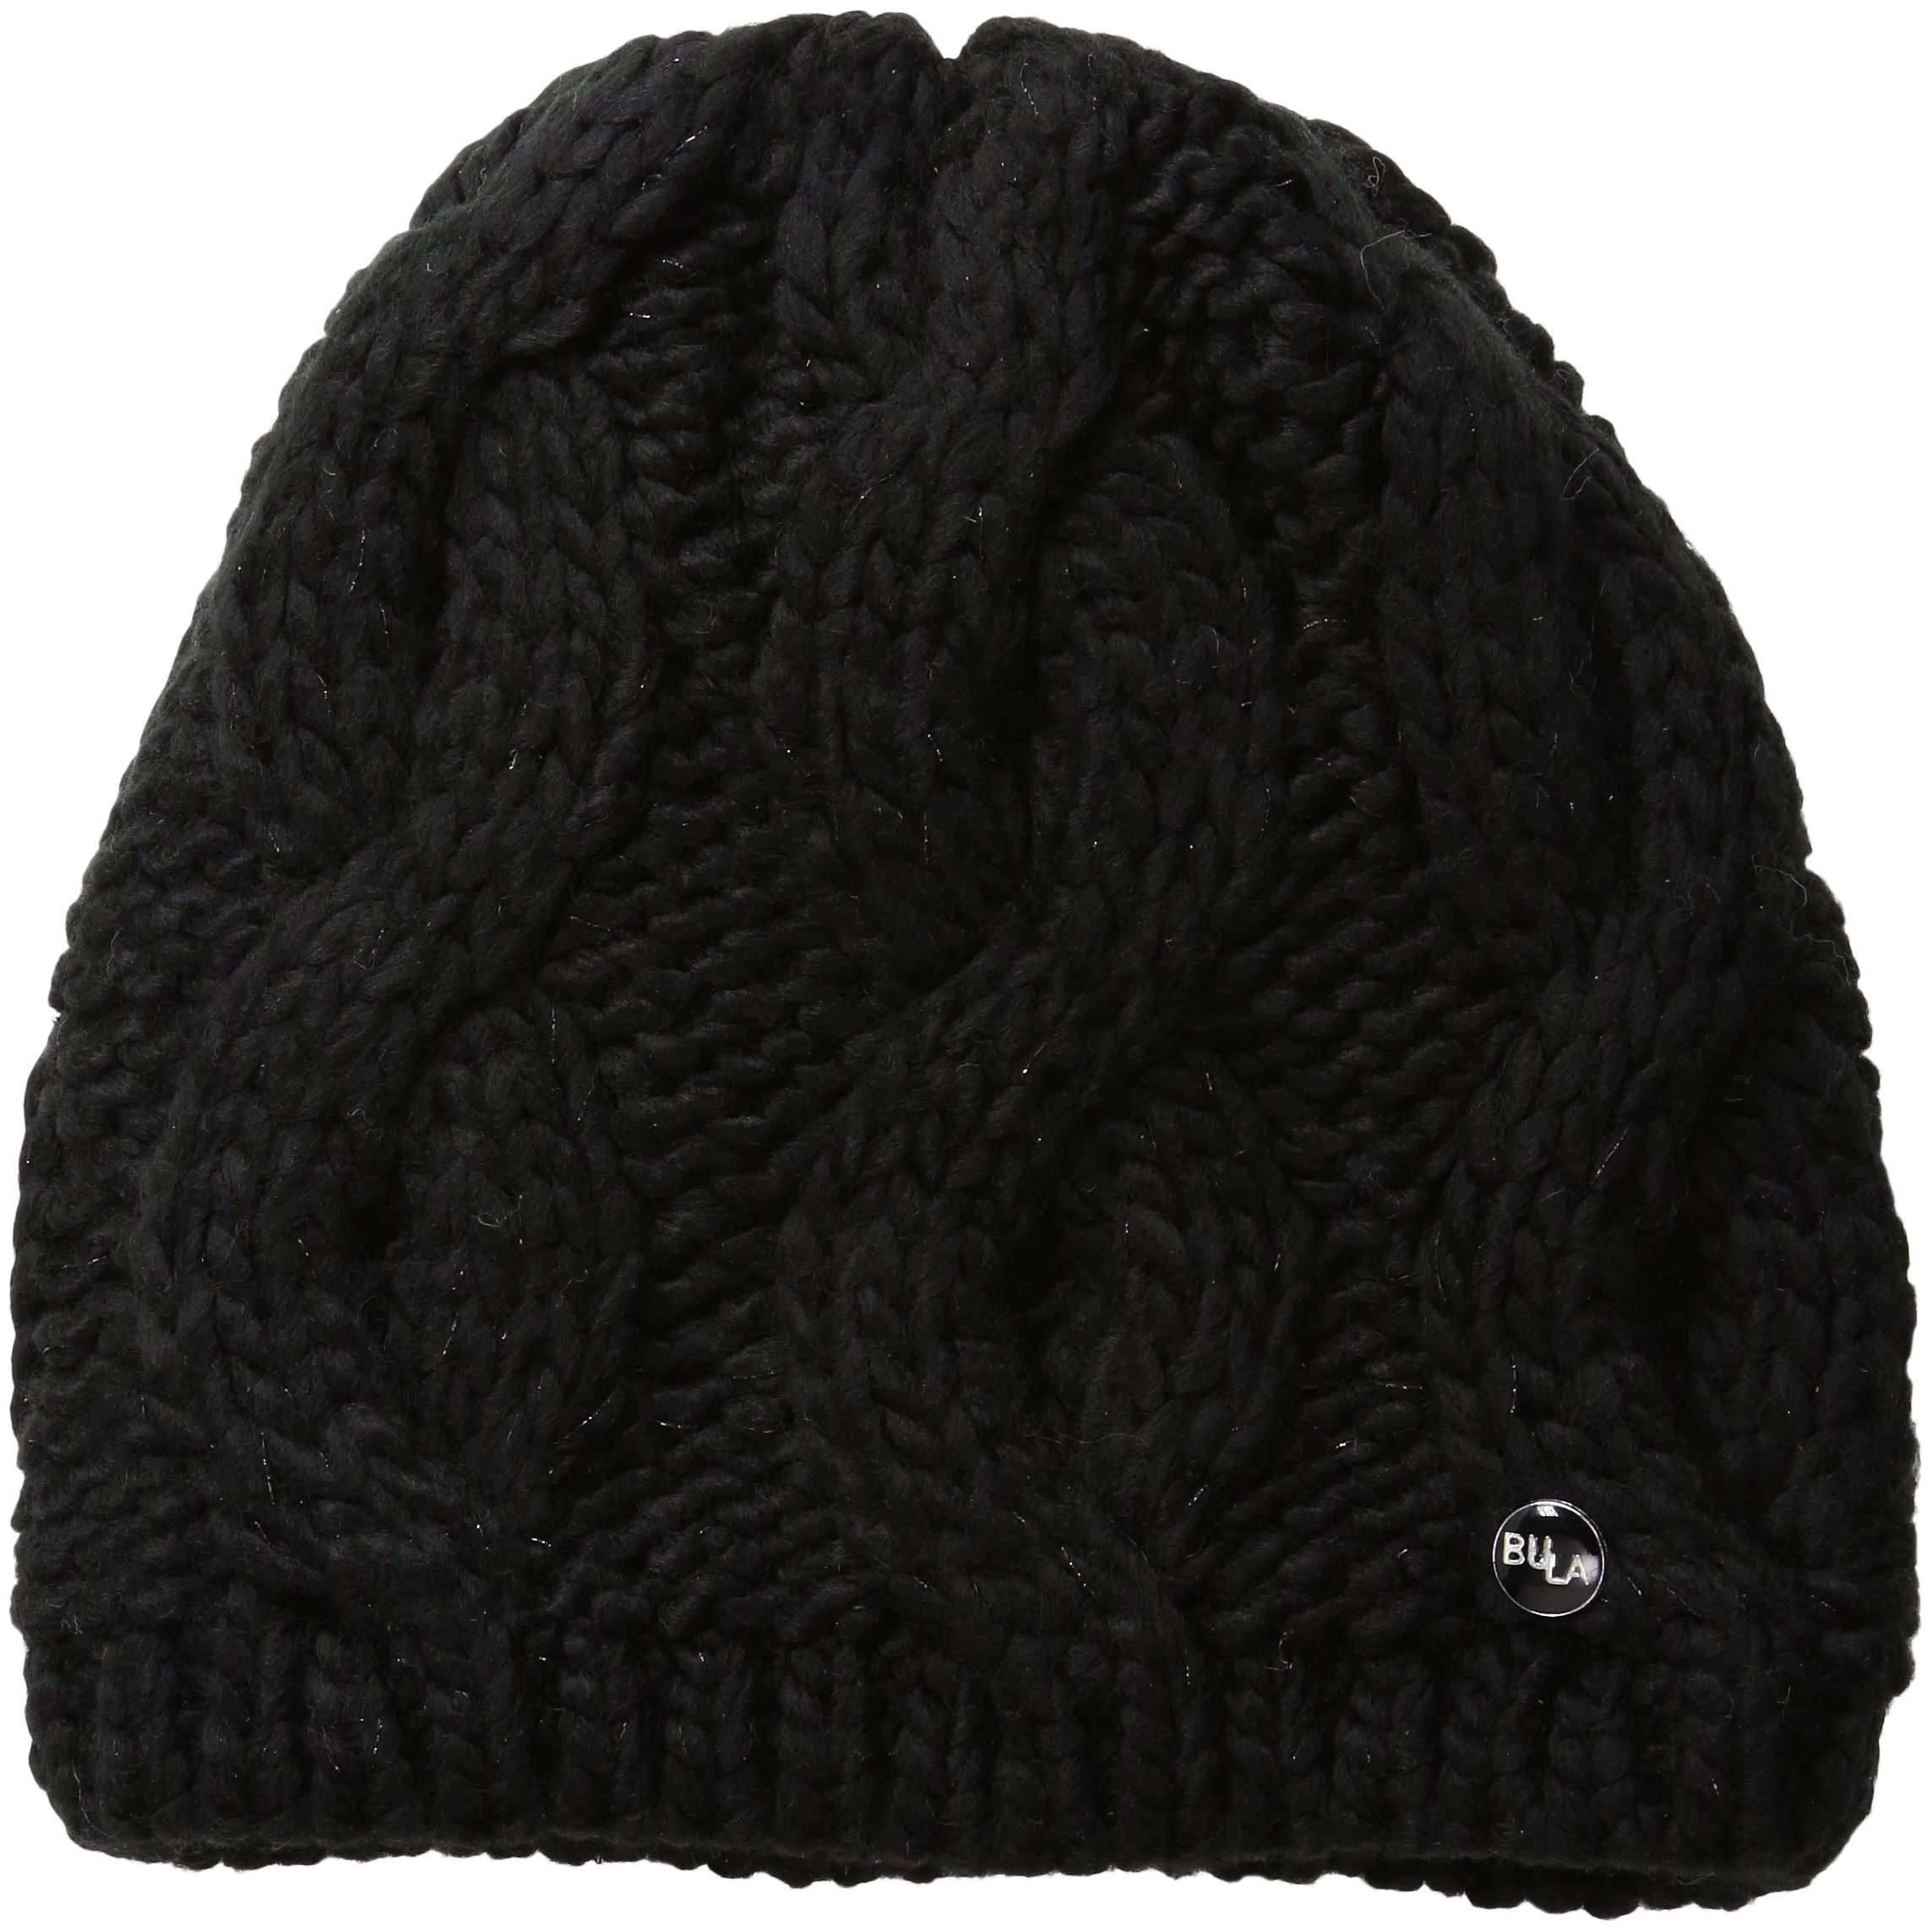 Bula Women's Lina Beanie, Black, One Size